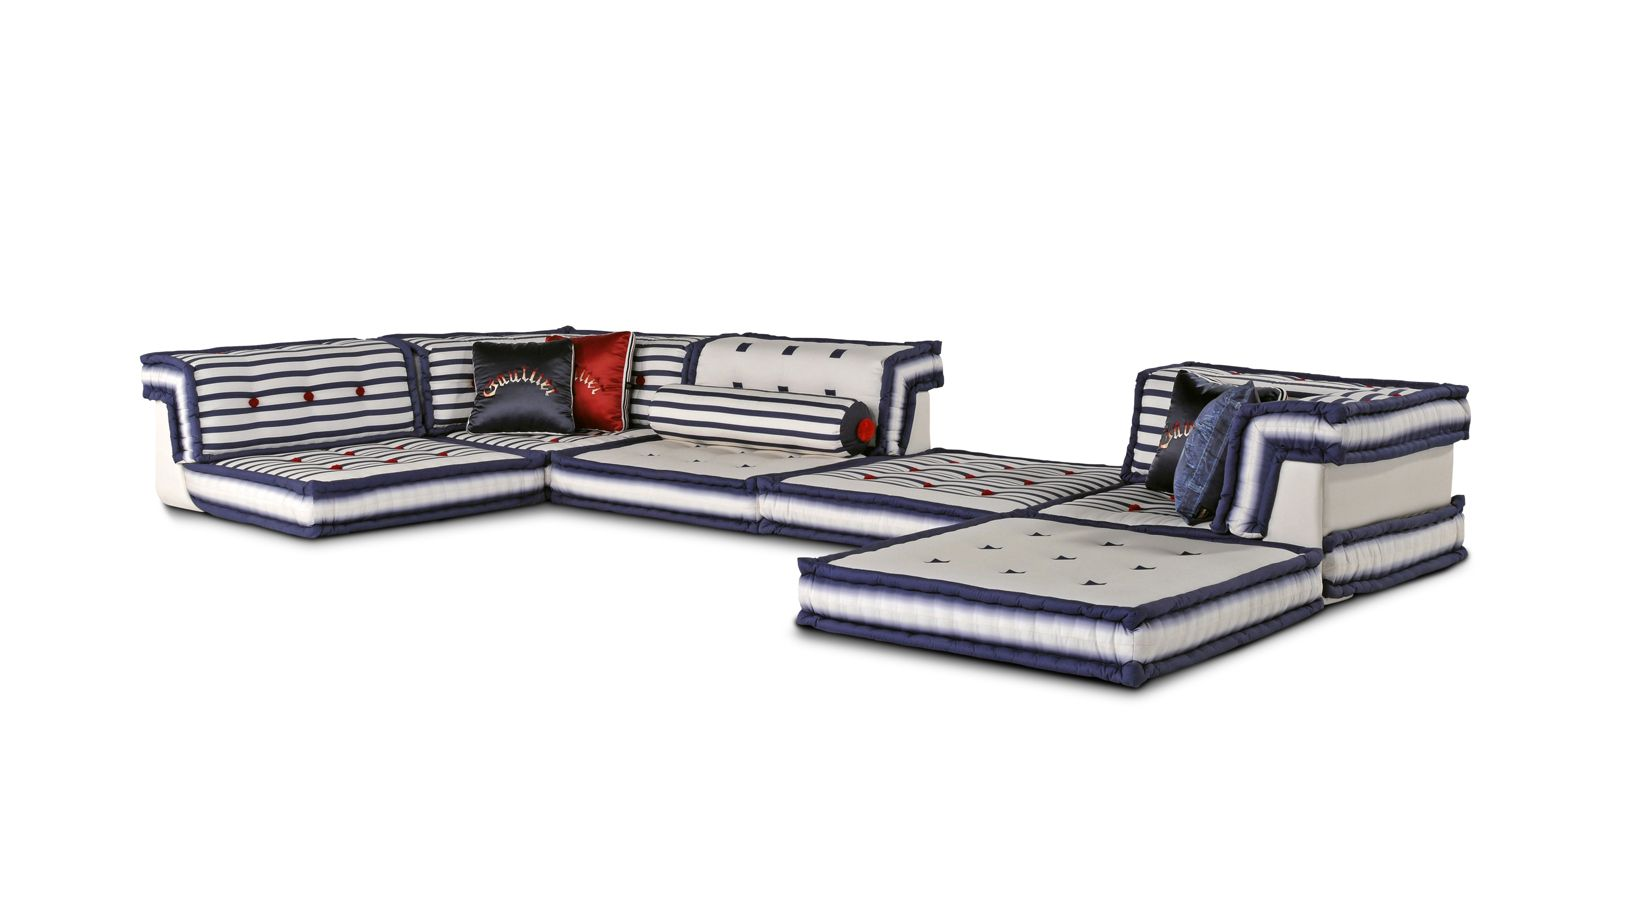 composizione matelot jean paul gaultier mah jong roche bobois. Black Bedroom Furniture Sets. Home Design Ideas